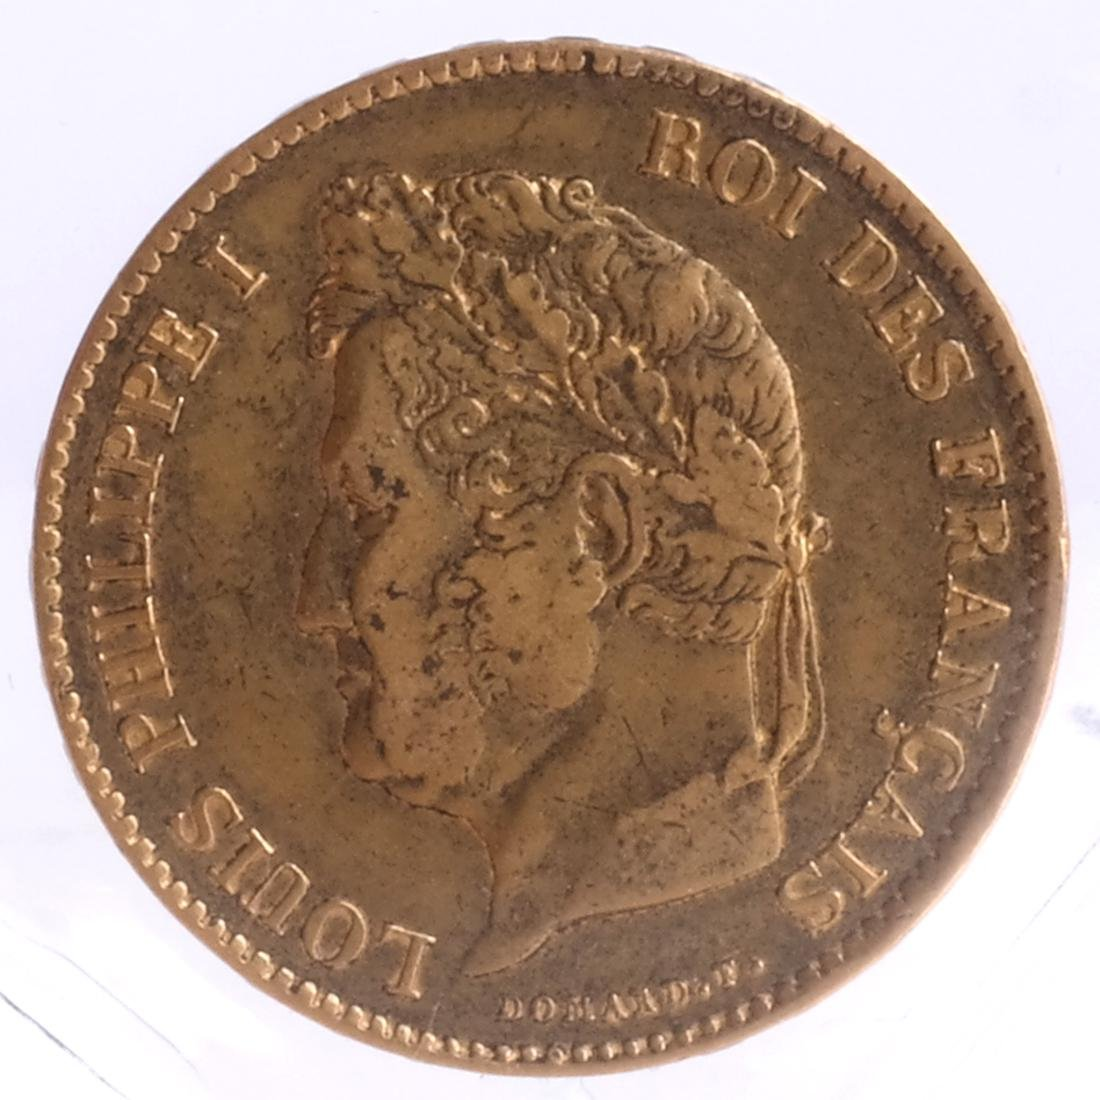 1856 40 Francs, Louis Philippe I, Gold